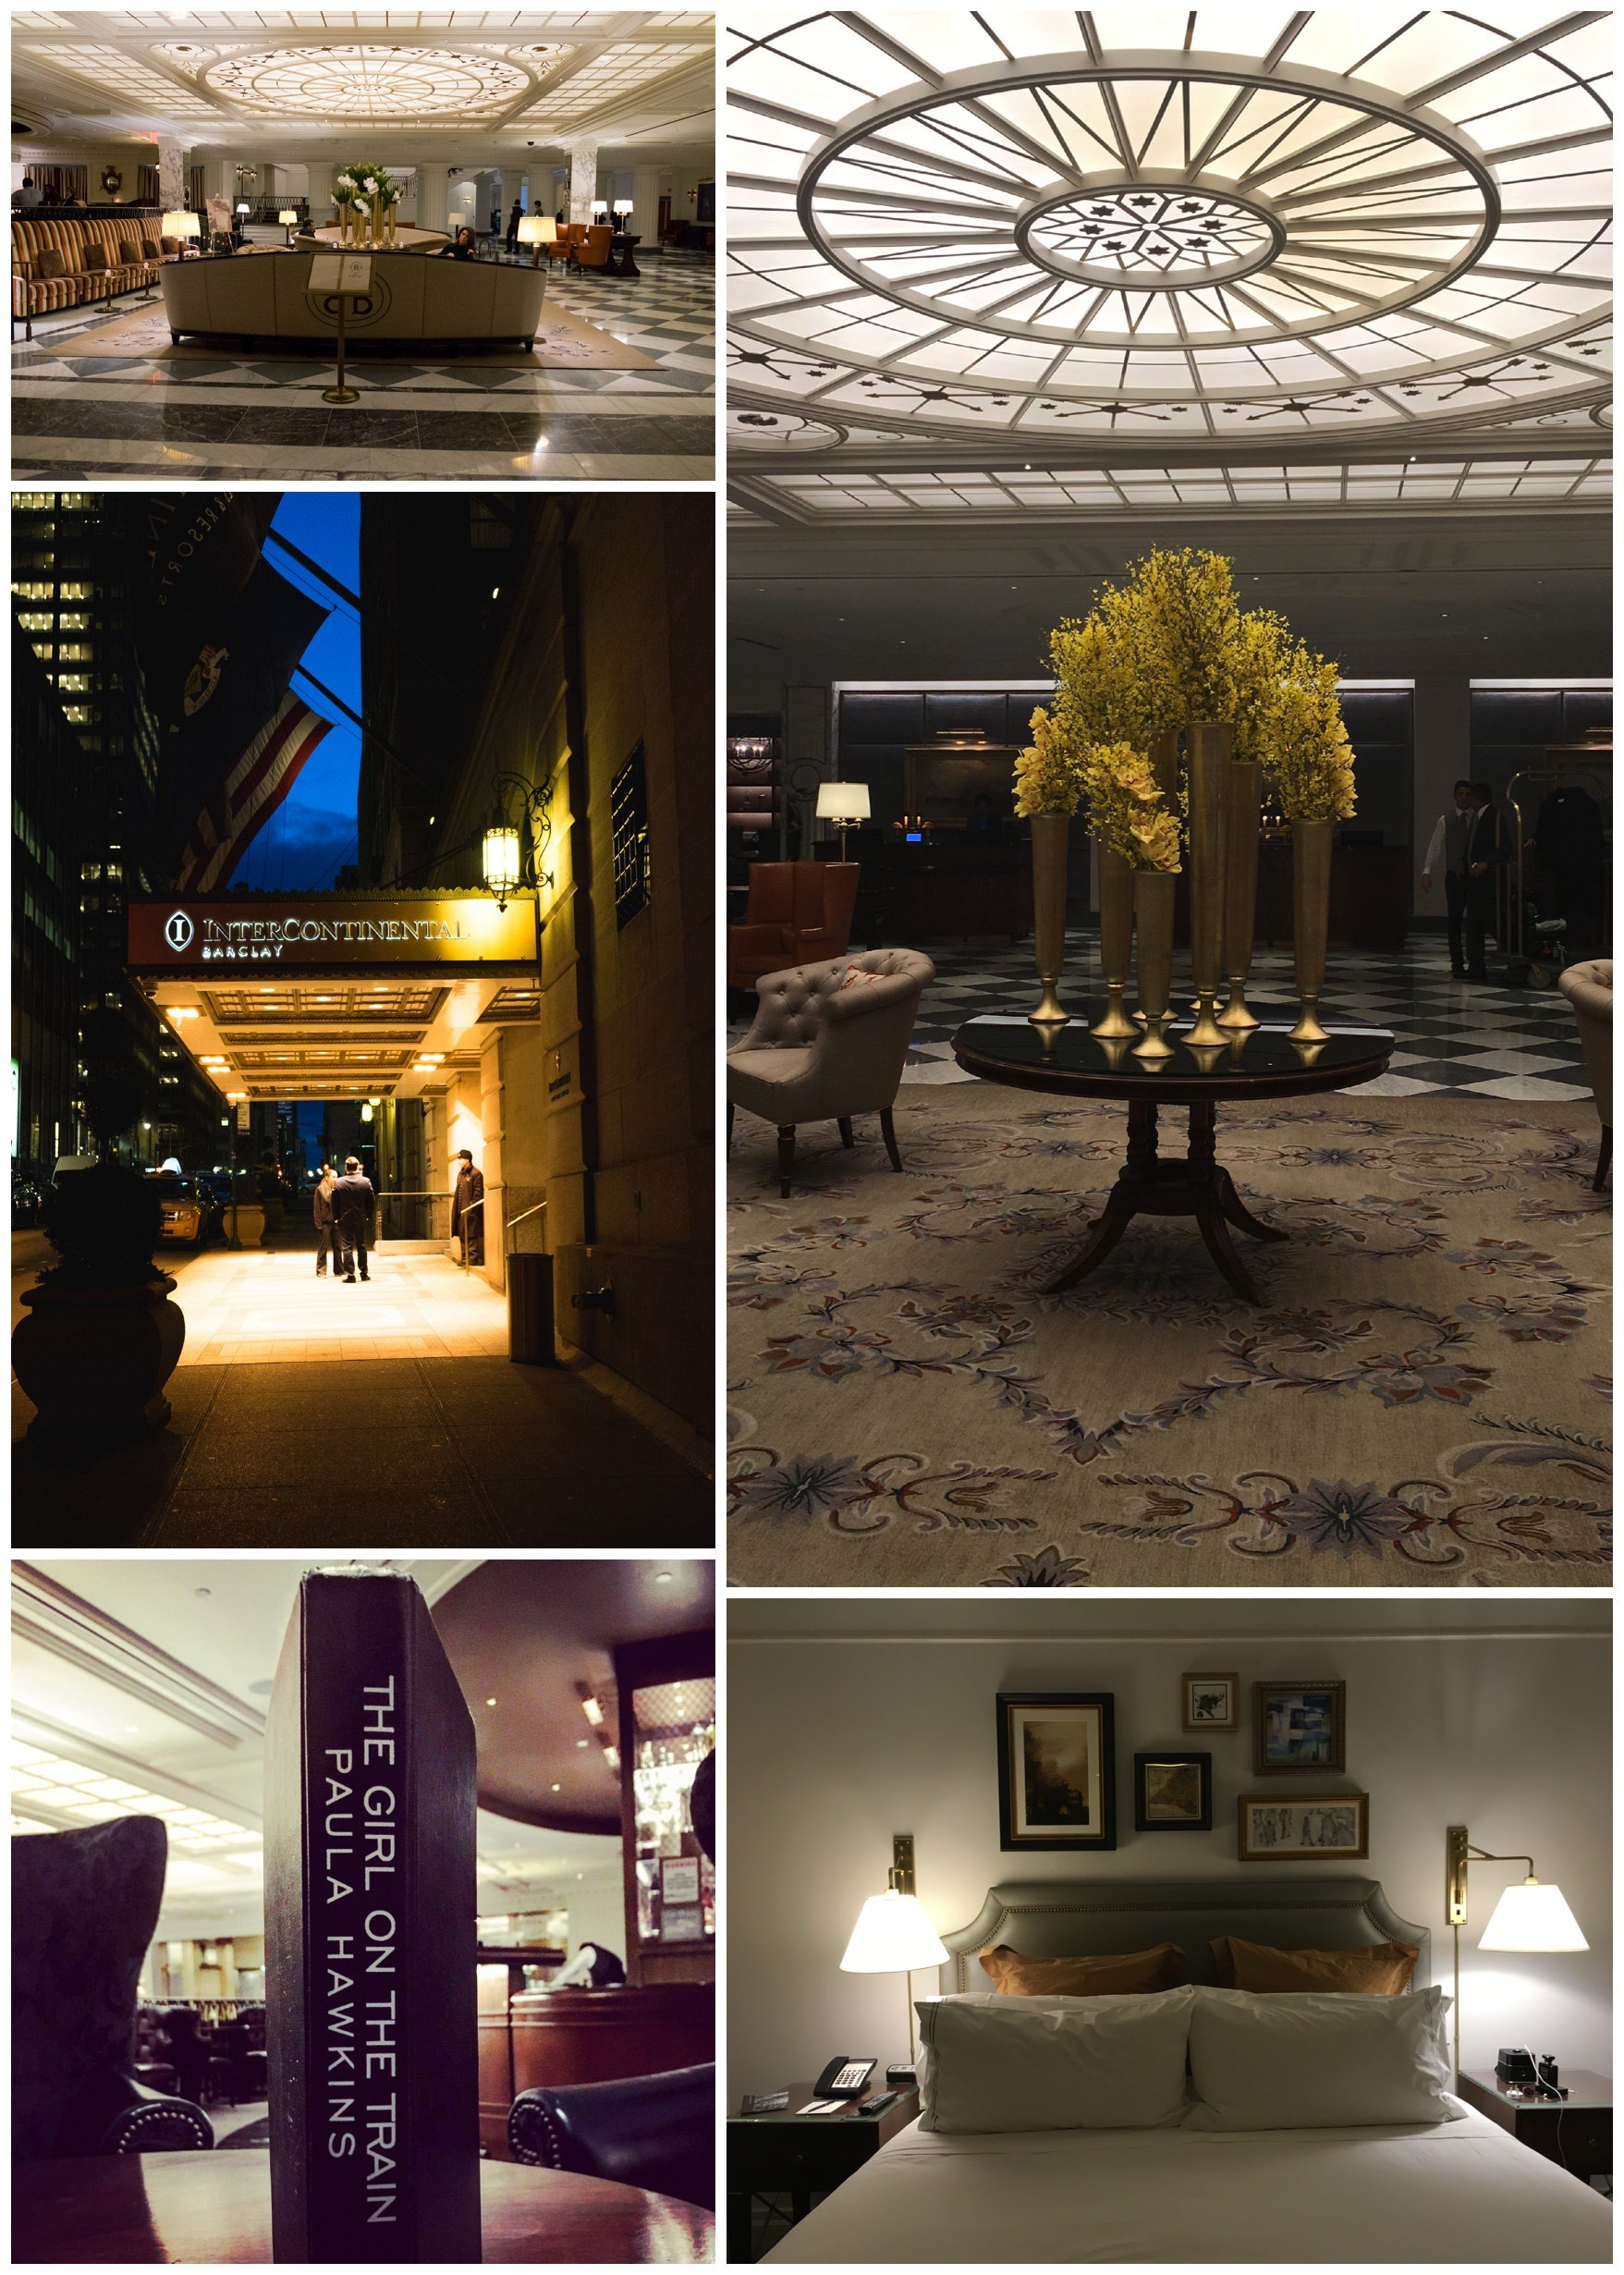 images of the foyer and bedroom of the Barclay hotel in new York